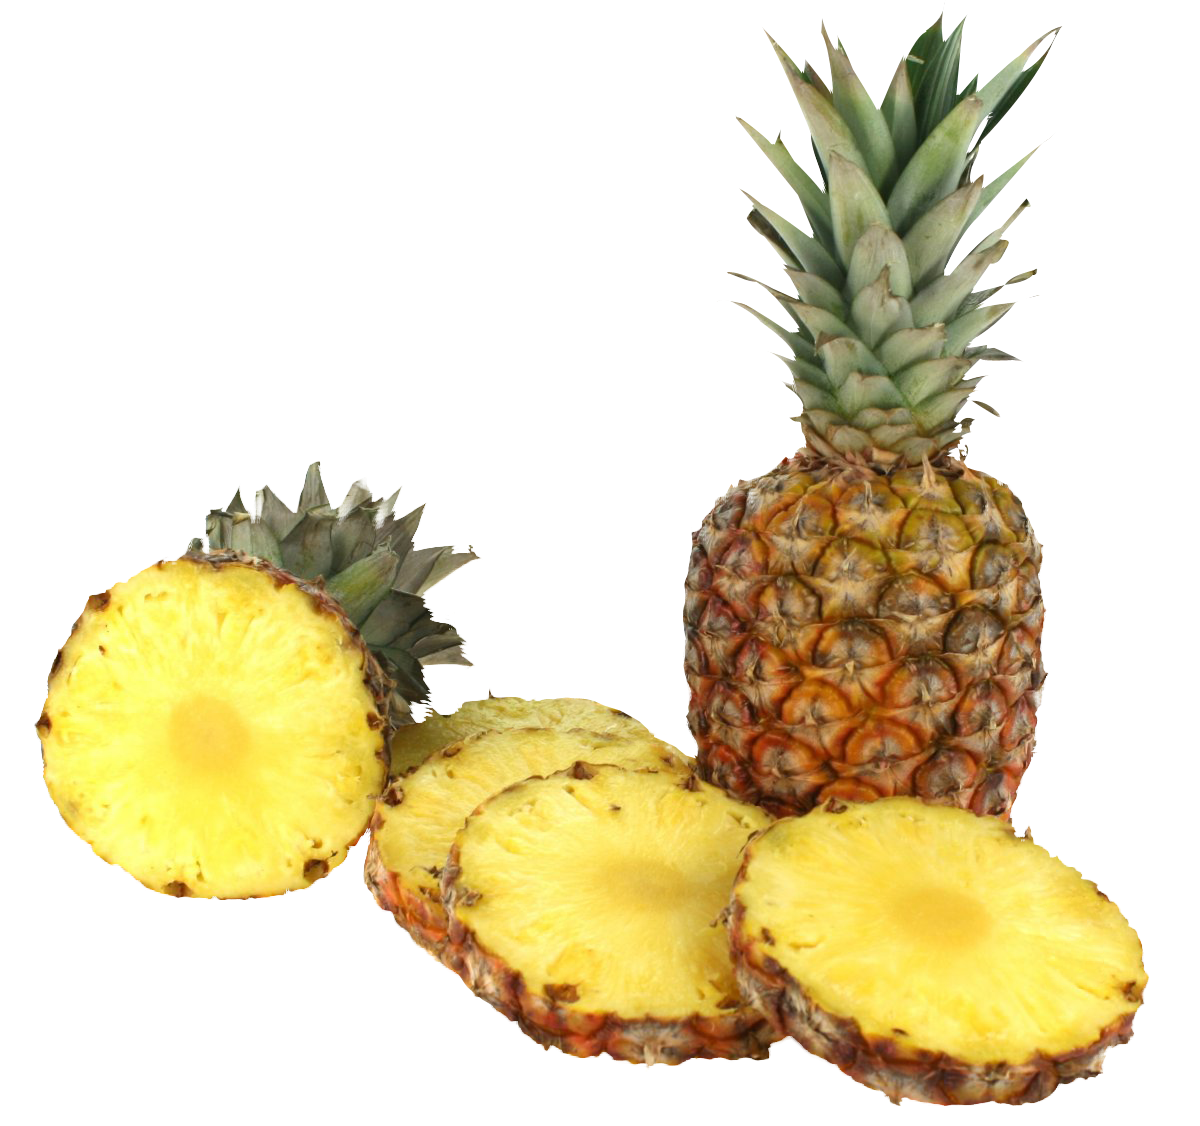 Pineapple HD PNG Transparent Pineapple HD.PNG Images.   PlusPNG